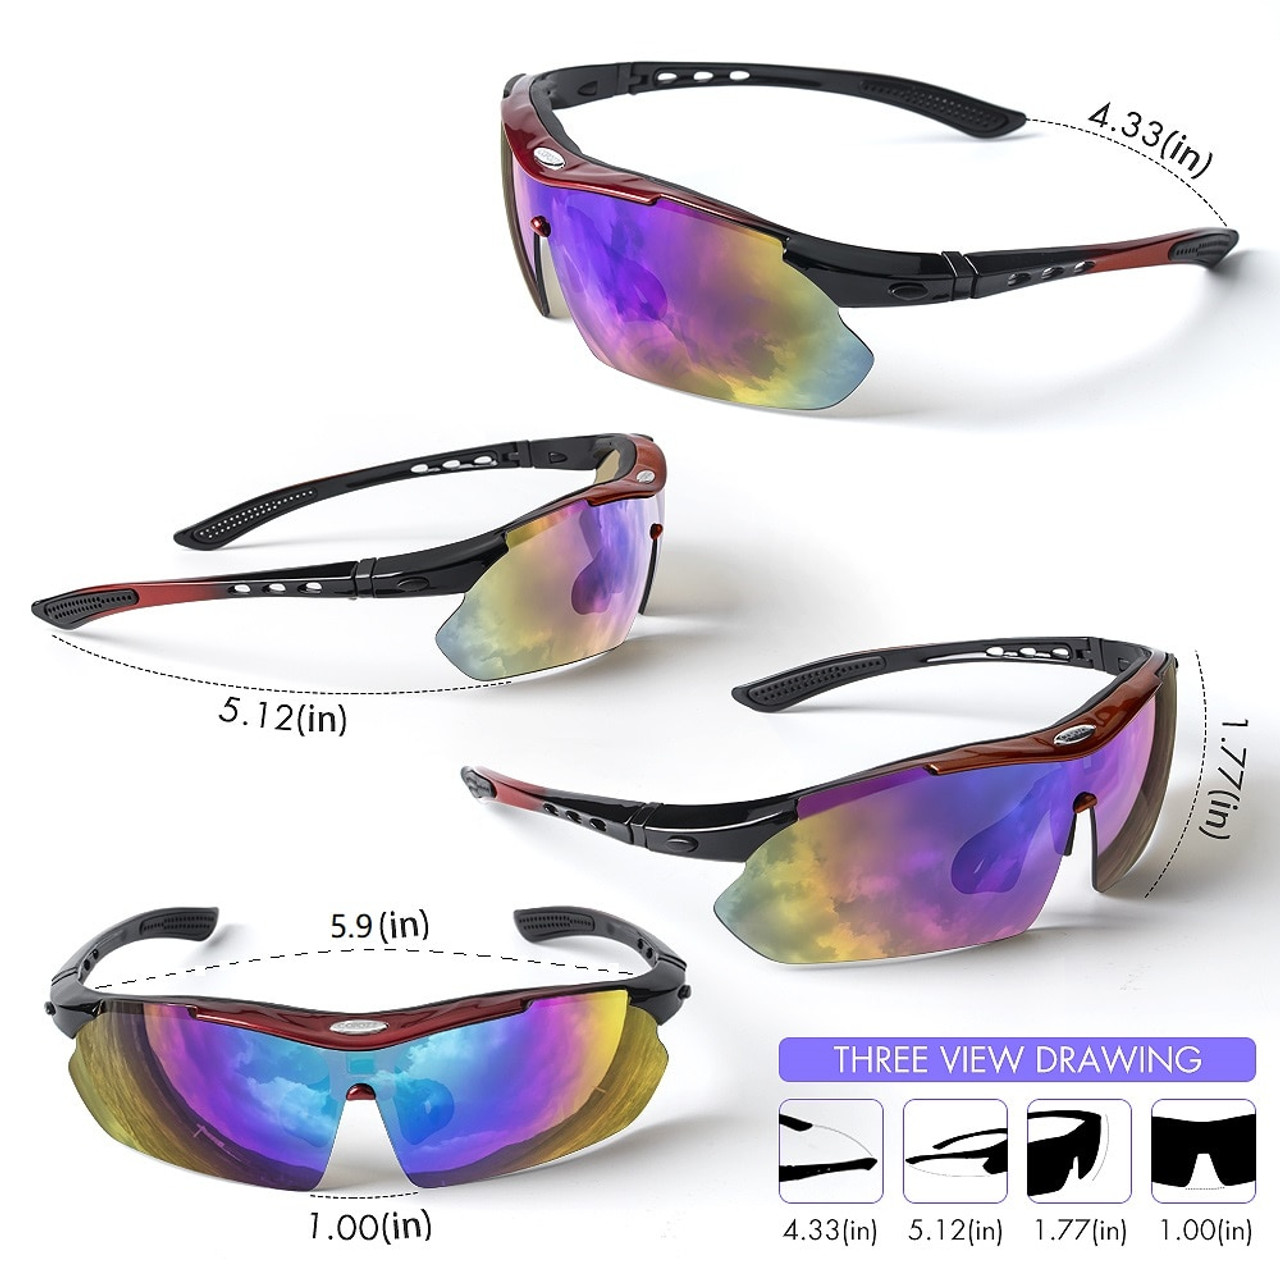 9f1b7006d7 ... Copozz Polarized Cycling Glasses Outdoor MTB Mountain Goggles Eyewear  Bicycle Sun Glasses Bike Sport Sunglasses Myopia ...